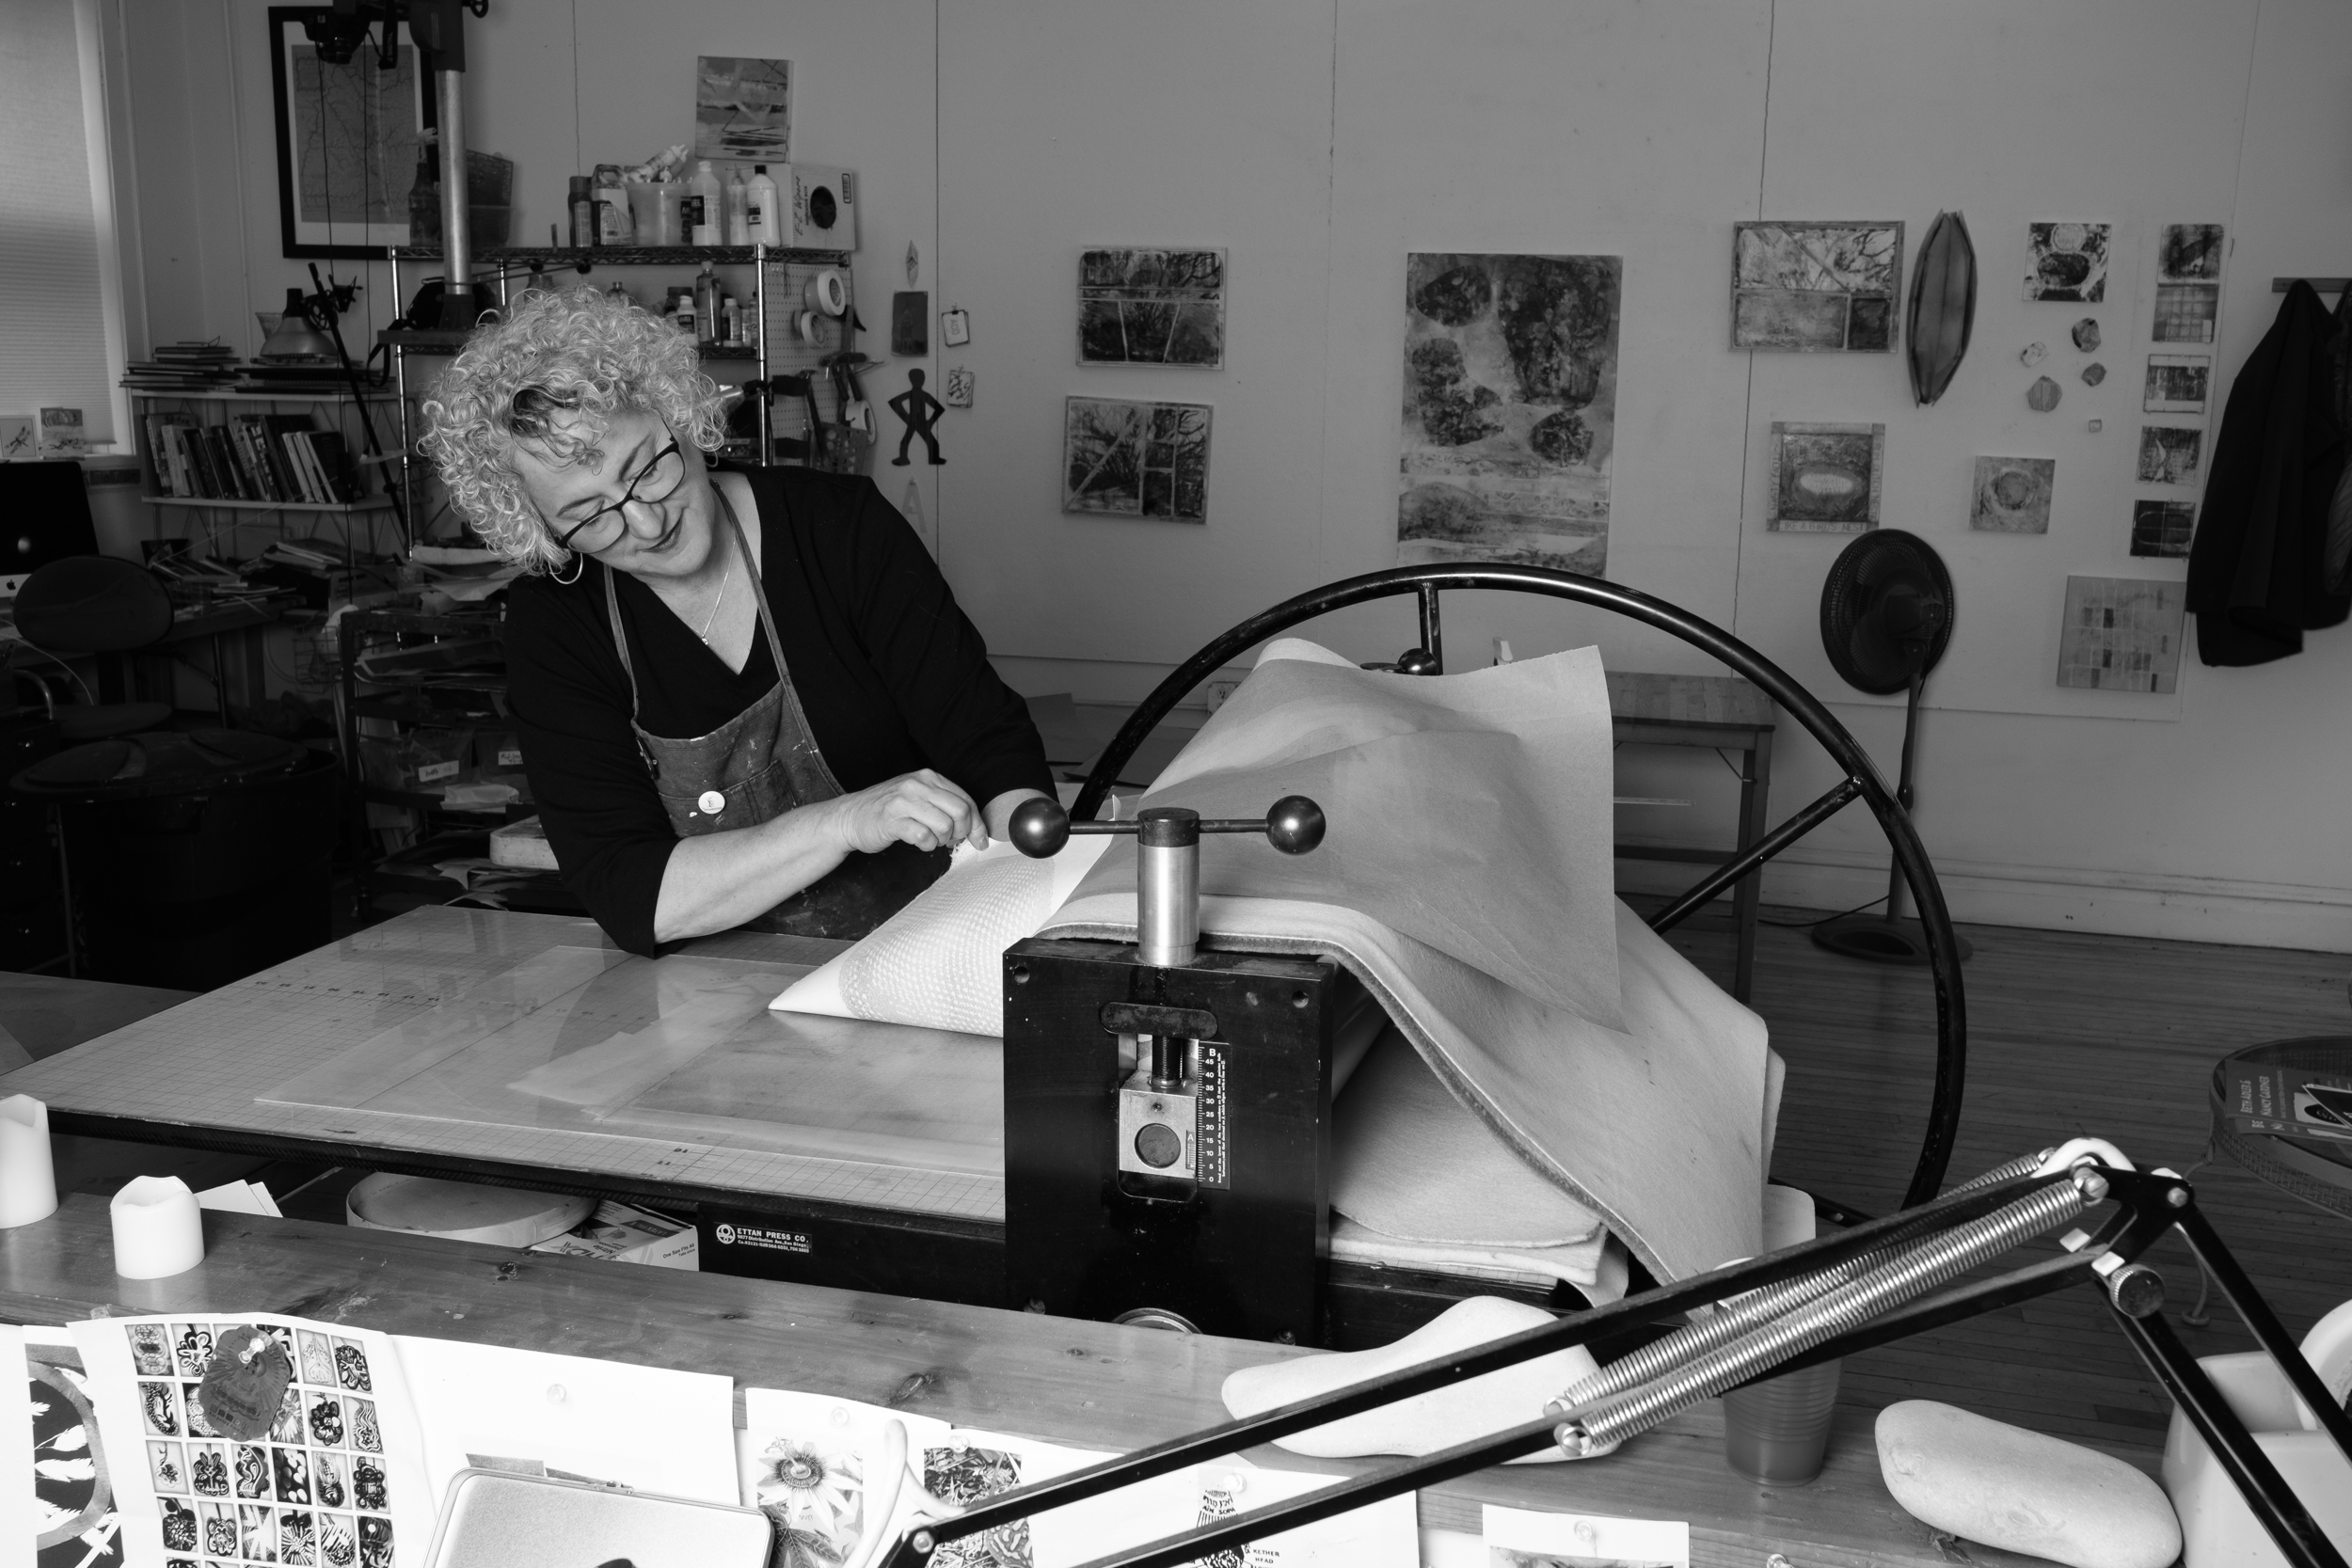 Beth Herman Adler at her press  See more images and read about Beth